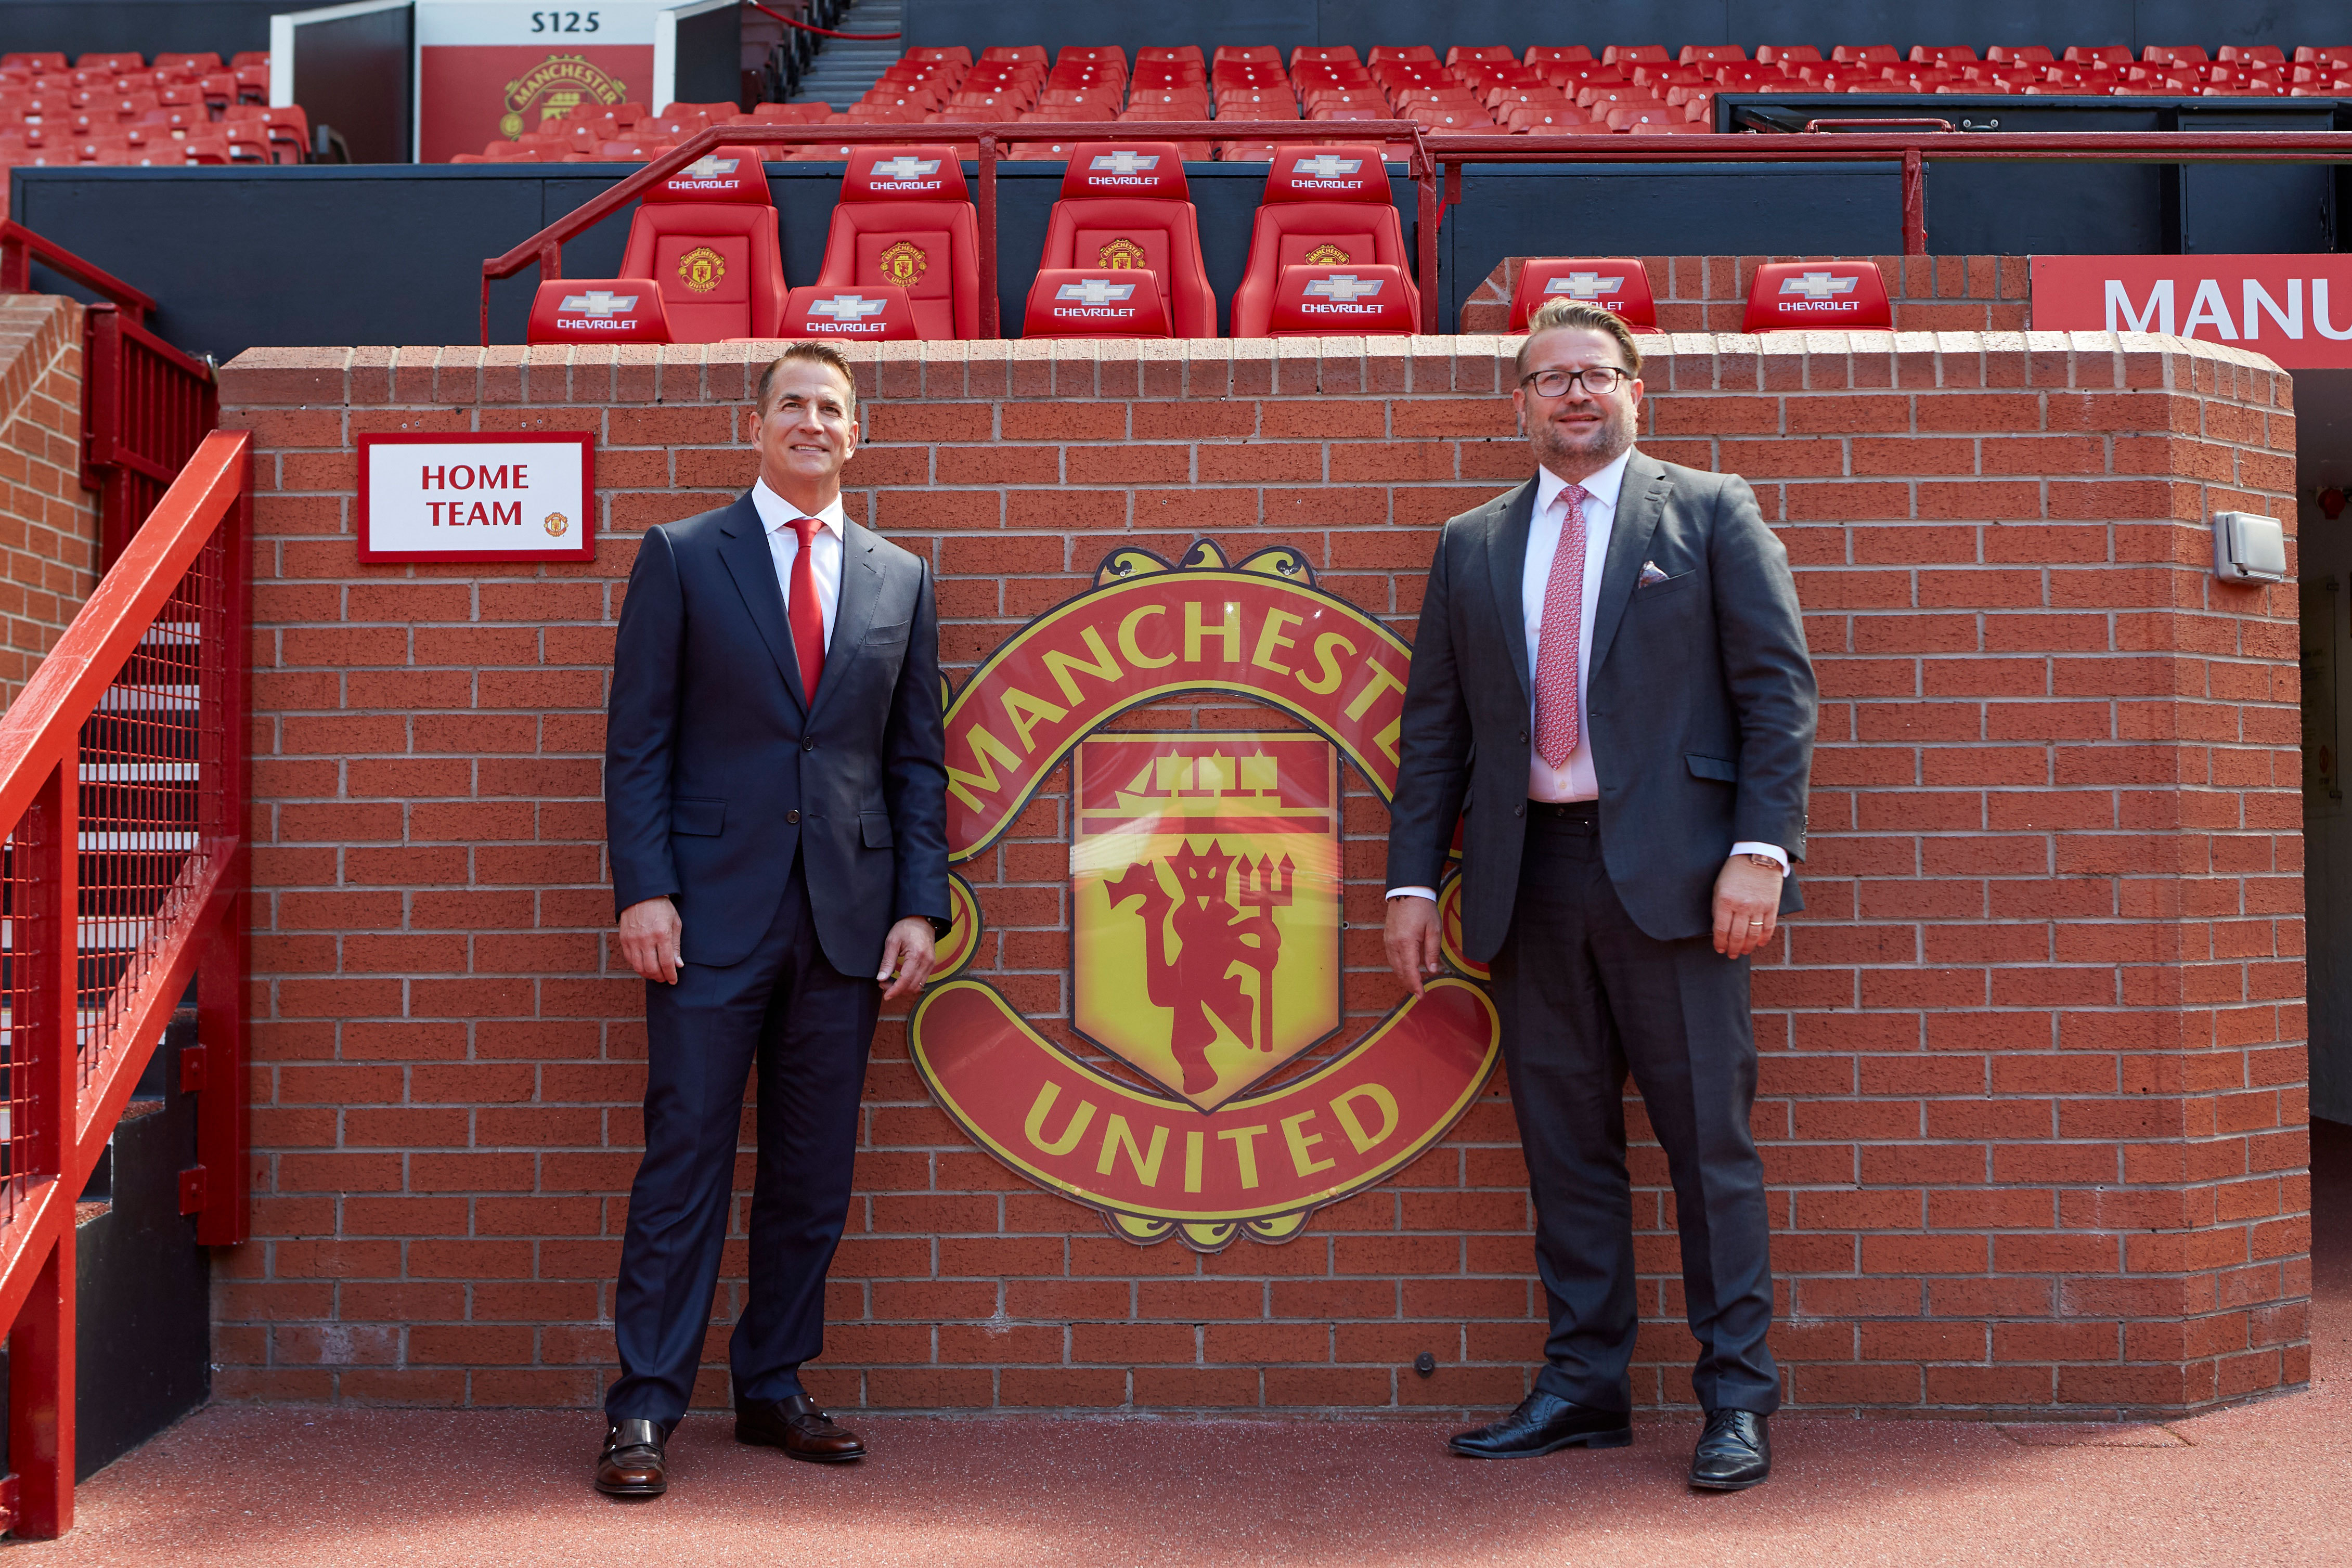 Kohler Co Unveiled As Principal Partner Of Manchester United Business Wire